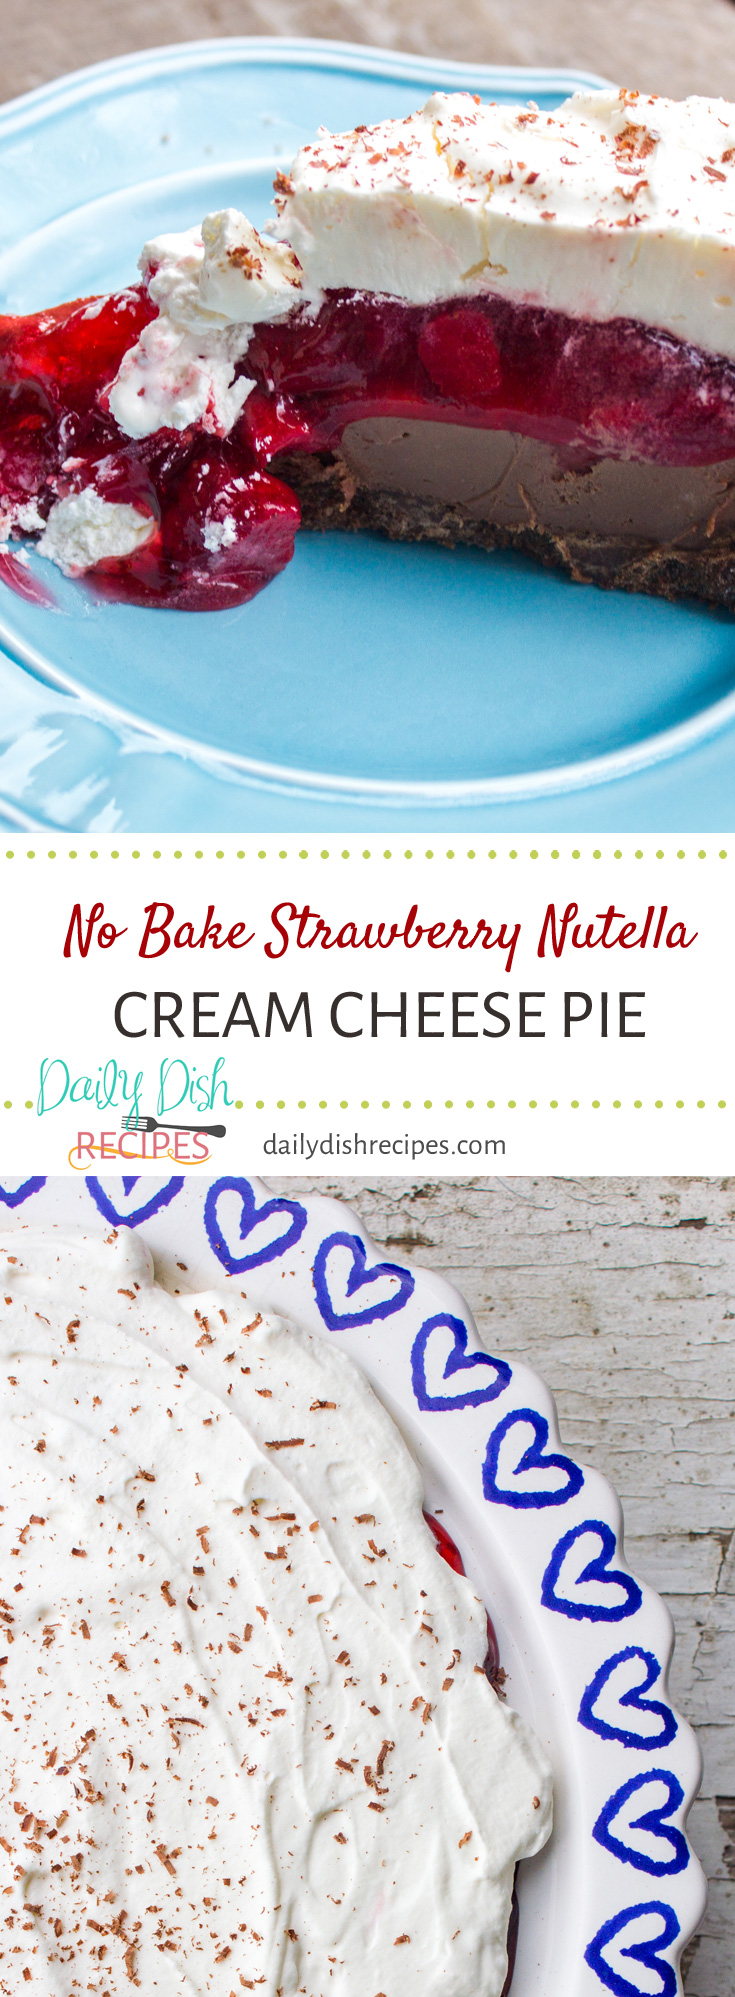 Creamy, nutty, fruity goodness all wrapped up into this delicous No Bake Strawberry Nutella Cream Cheese Pie. An easy dessert recipe everyone loves!